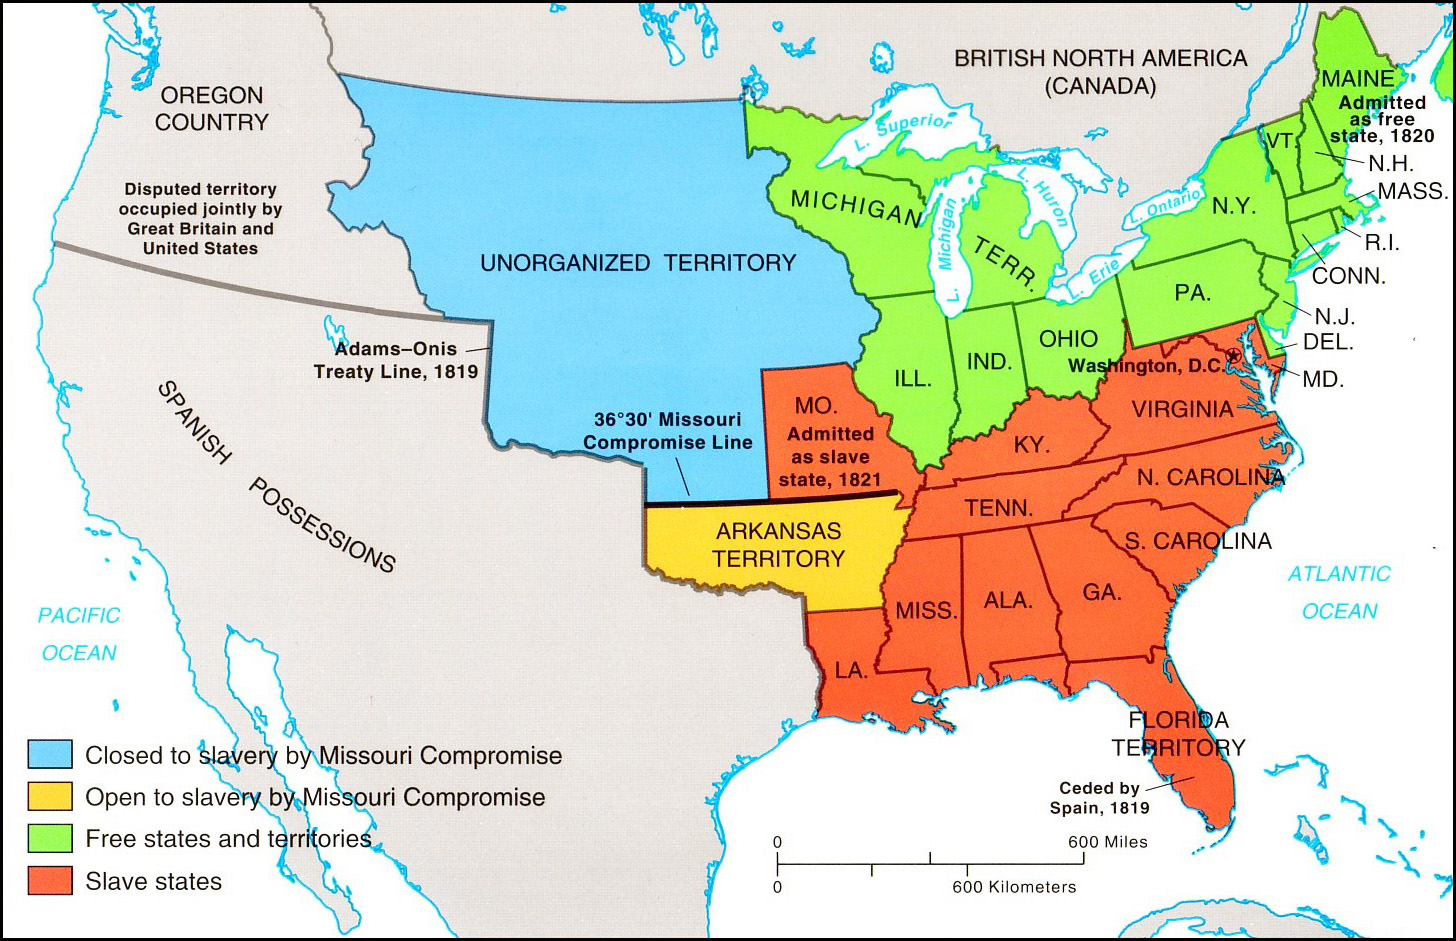 In The Missouri Compromise